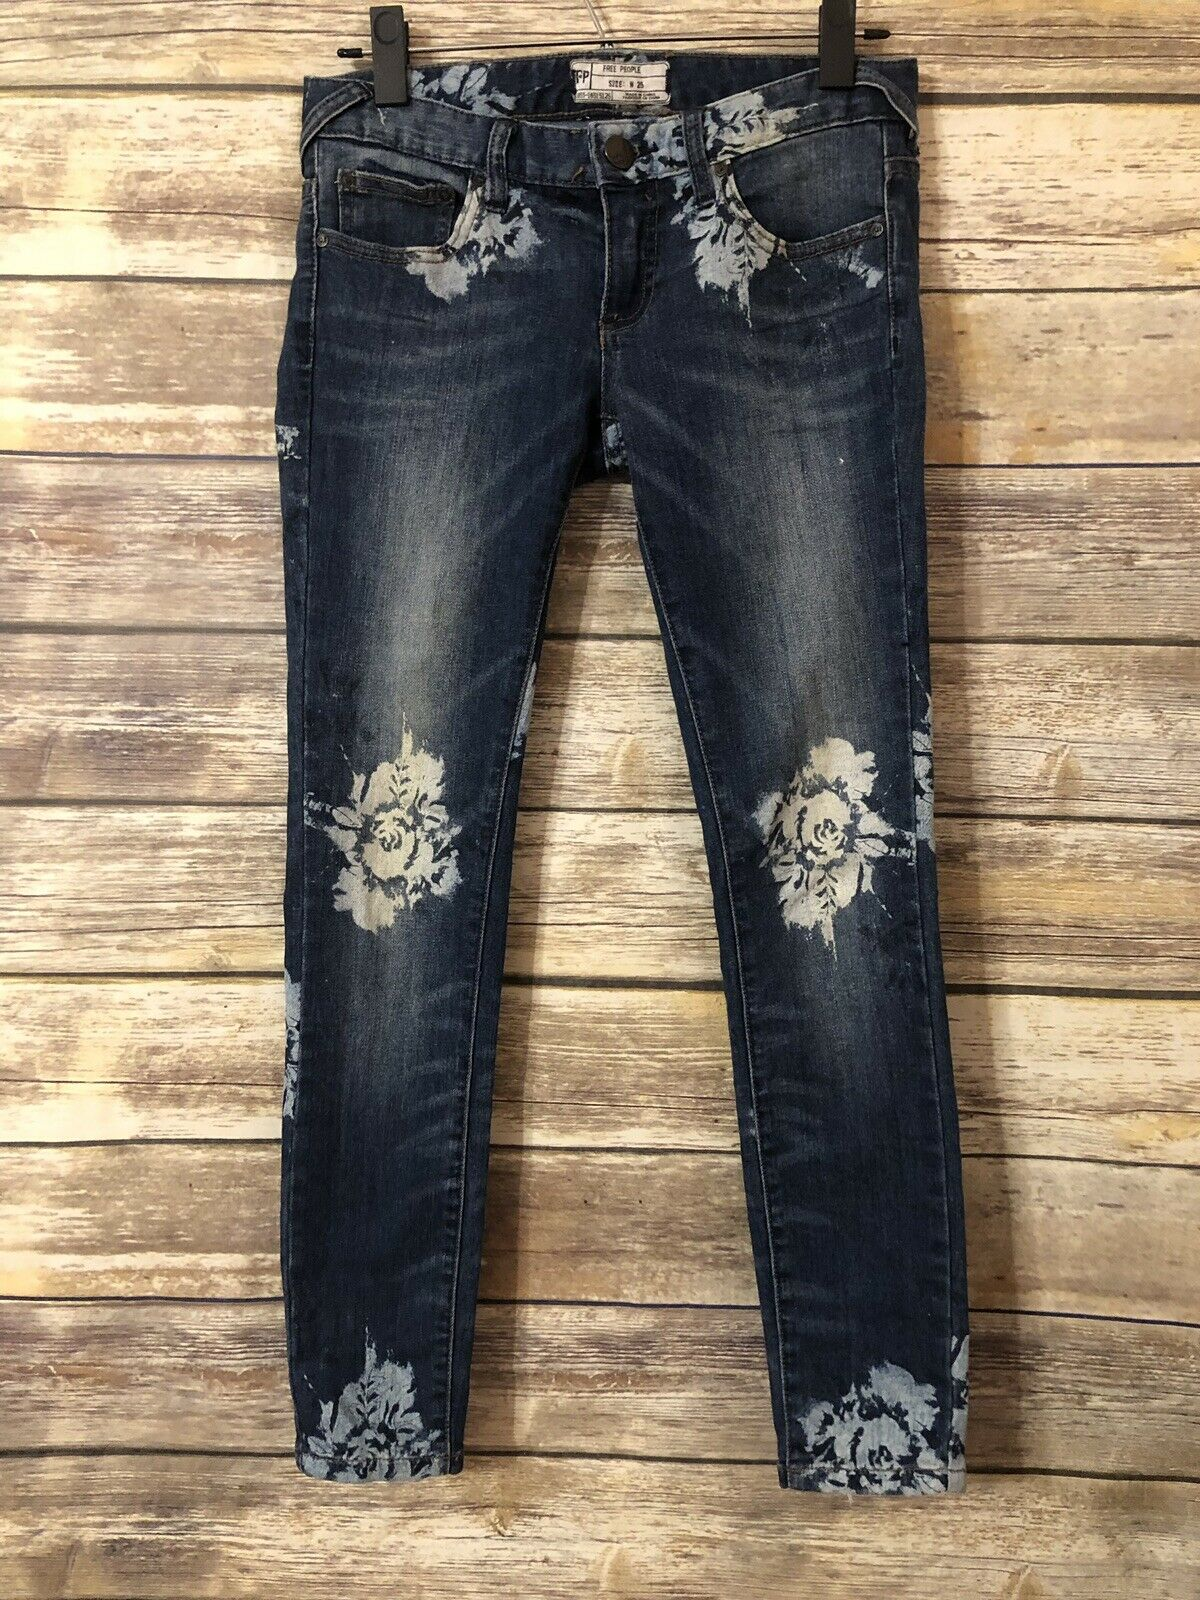 Free People Ankle Skinny Jeans Denim Floral pink 25